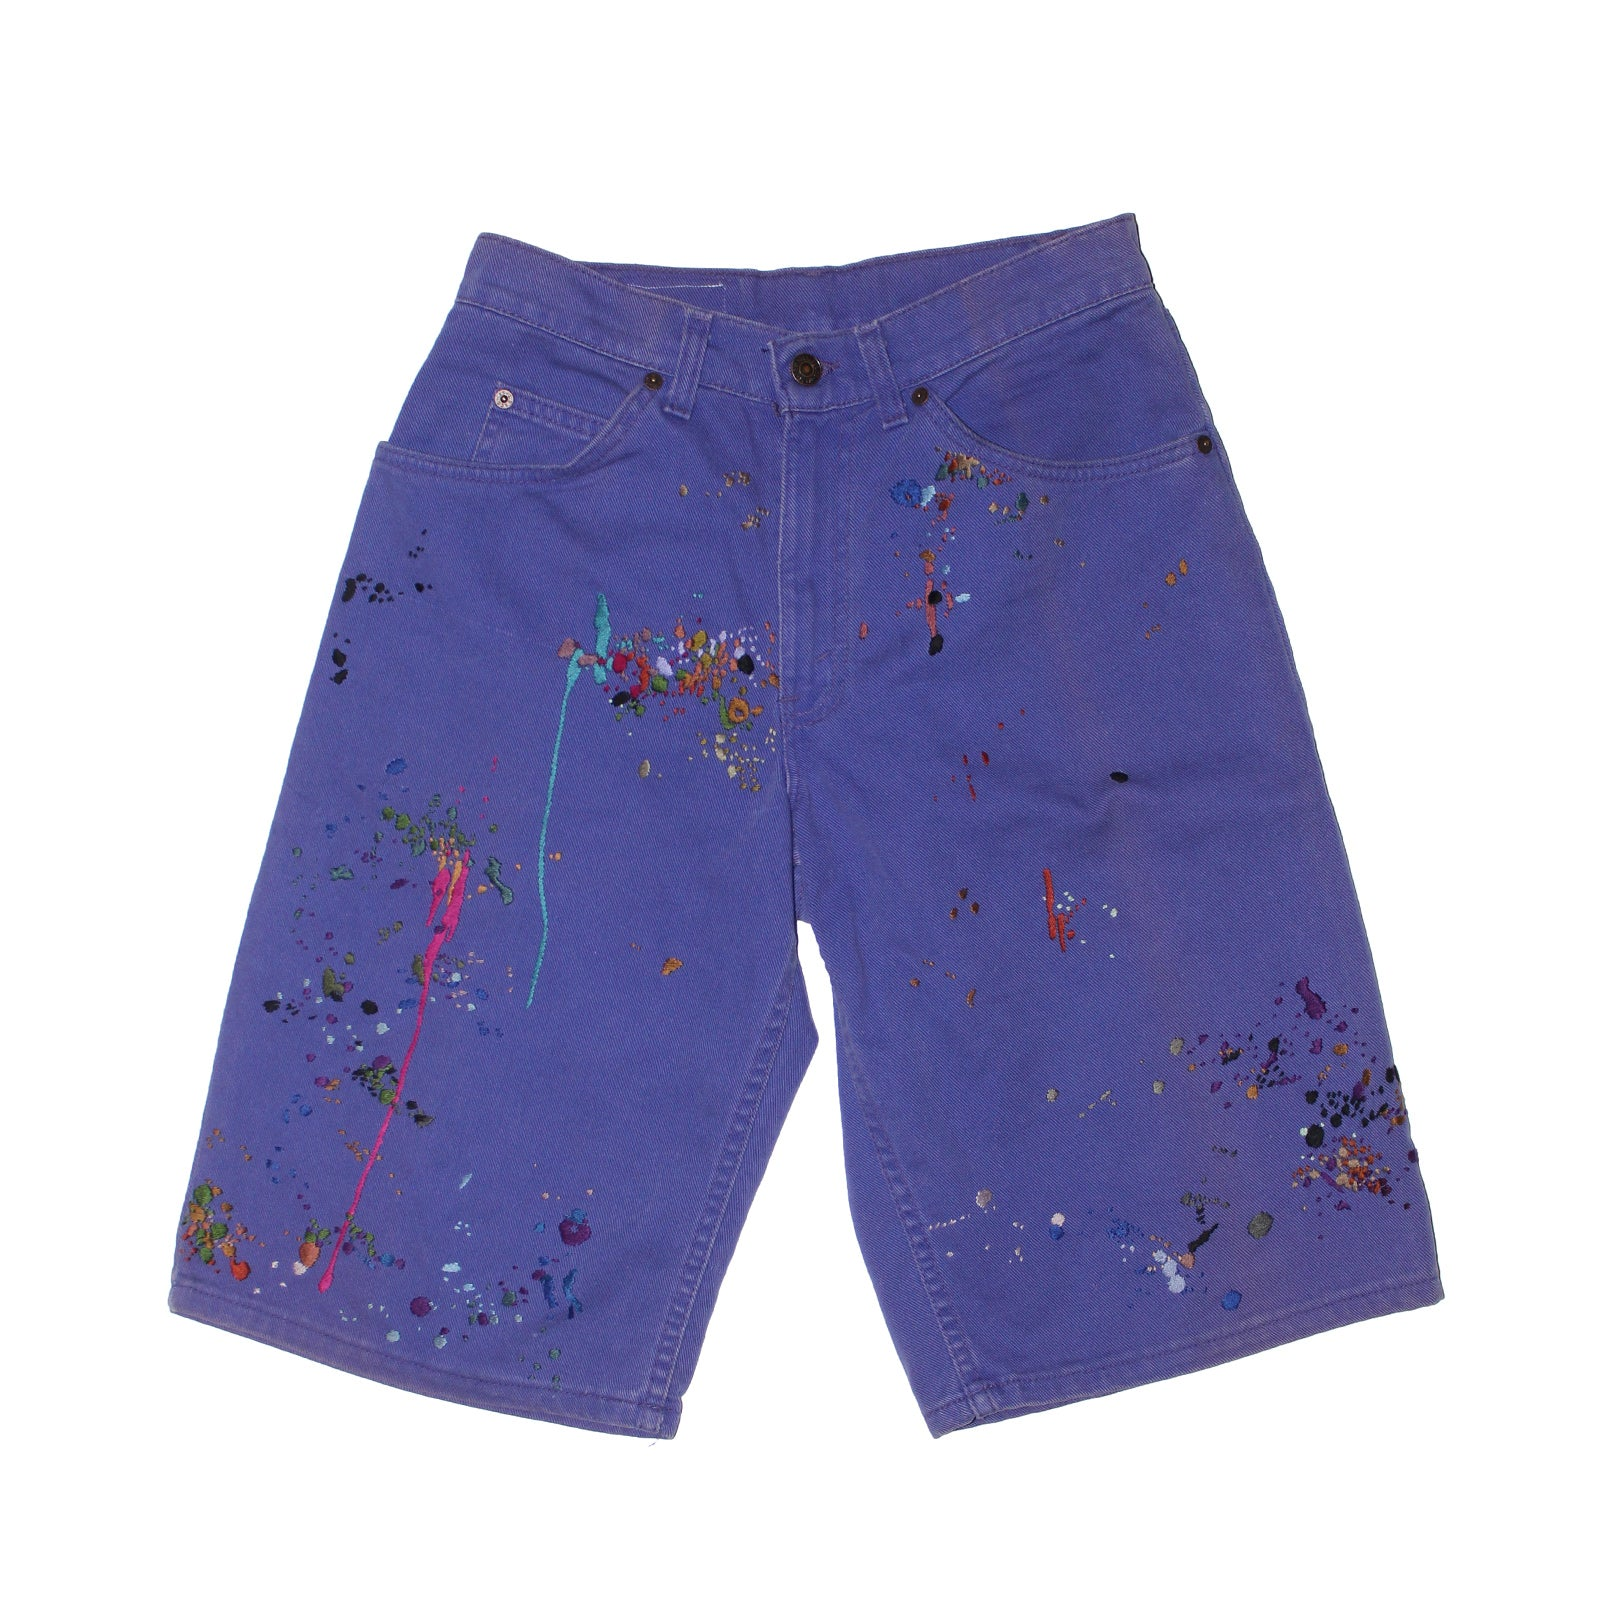 "BANDULU "" GRAPES OF LAUGH "" VINTAGE LEVI'S JORTS - 30"""